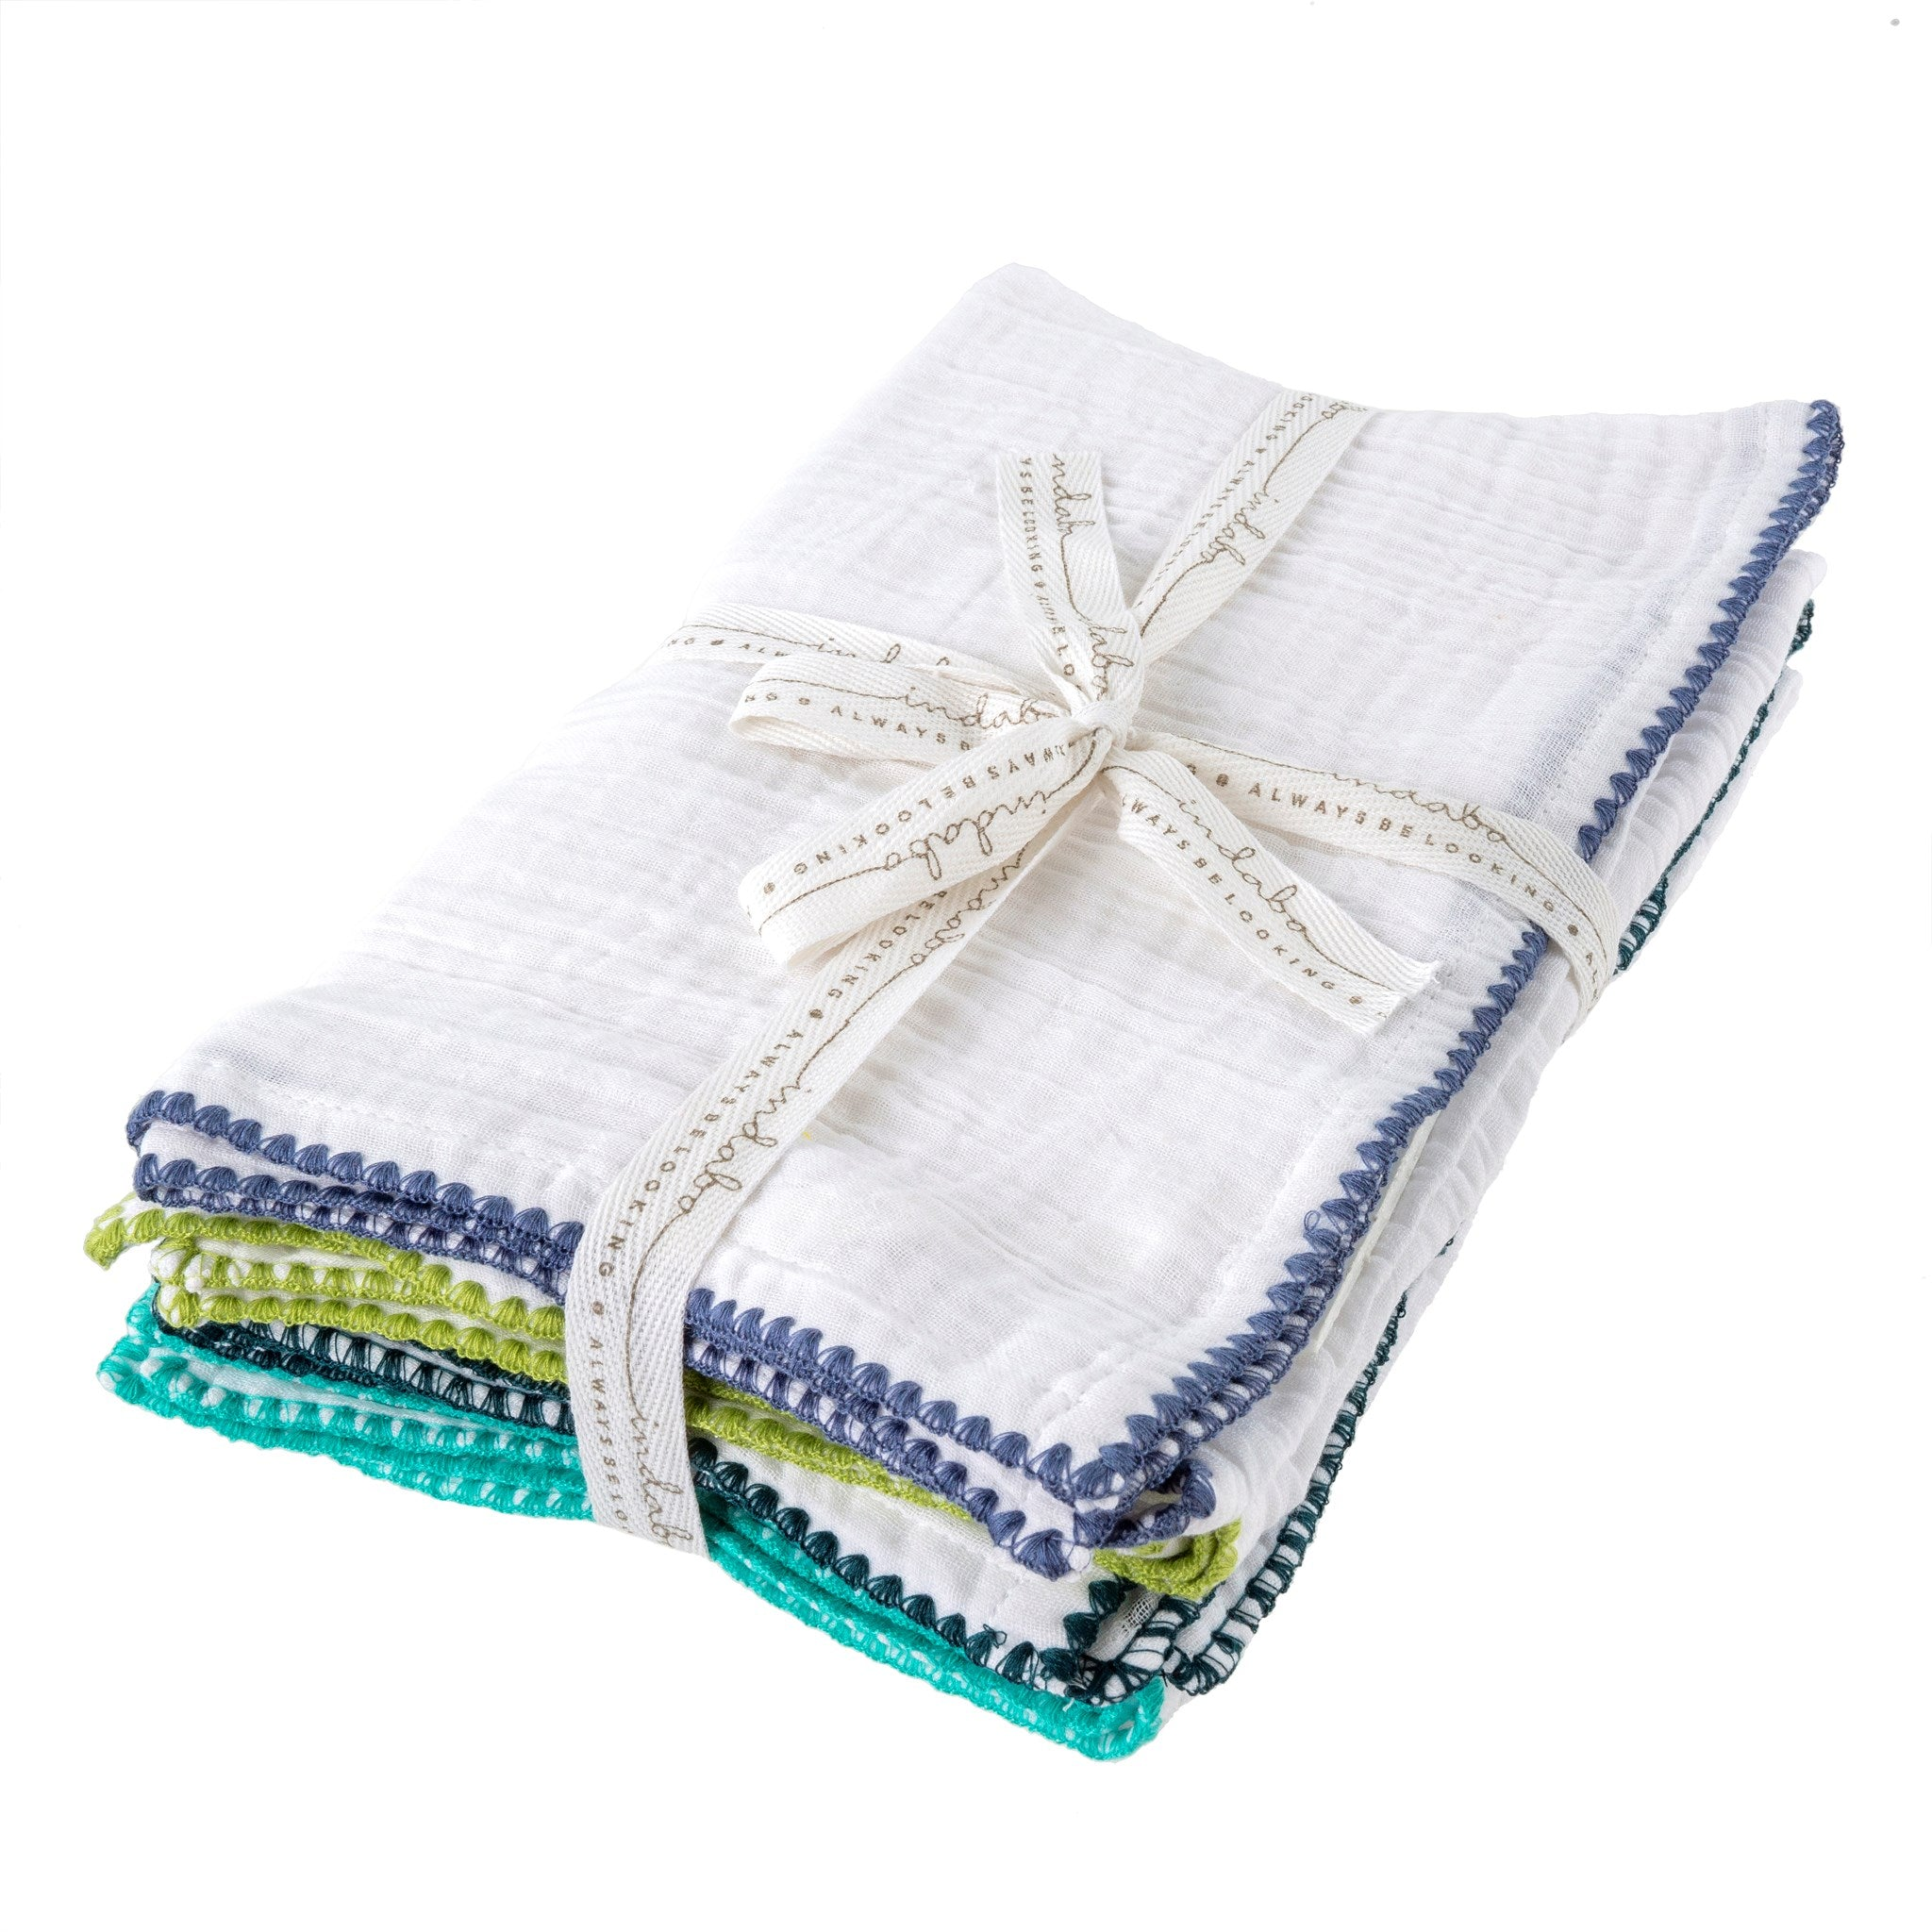 Stitched Edge Tea Towels